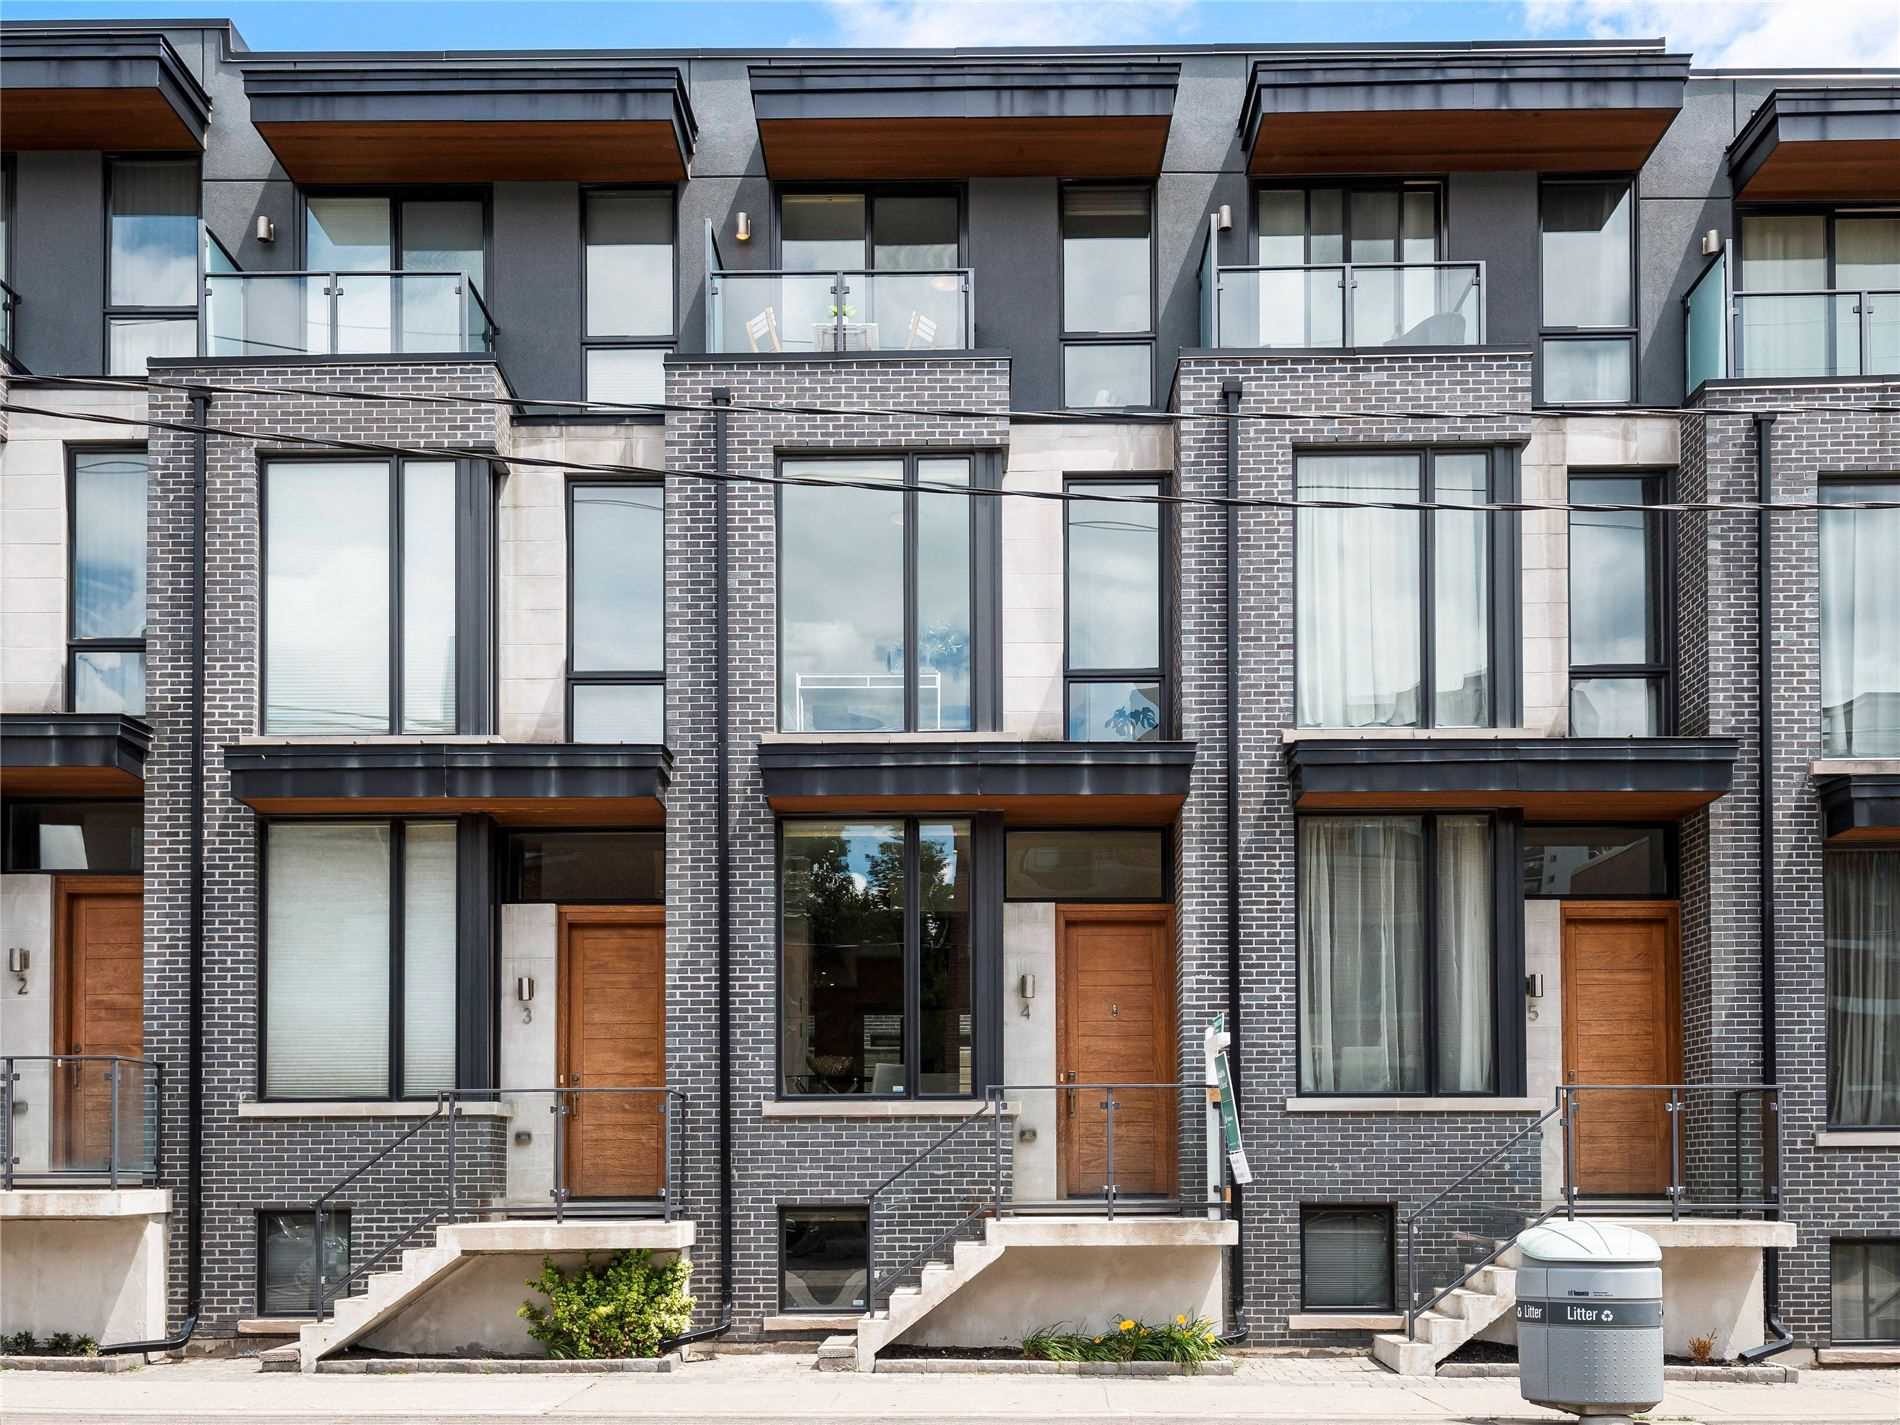 837 Broadview Ave, Toronto, Ontario M4K2P9, 3 Bedrooms Bedrooms, 6 Rooms Rooms,3 BathroomsBathrooms,Att/row/twnhouse,For Sale,Broadview,E5297313